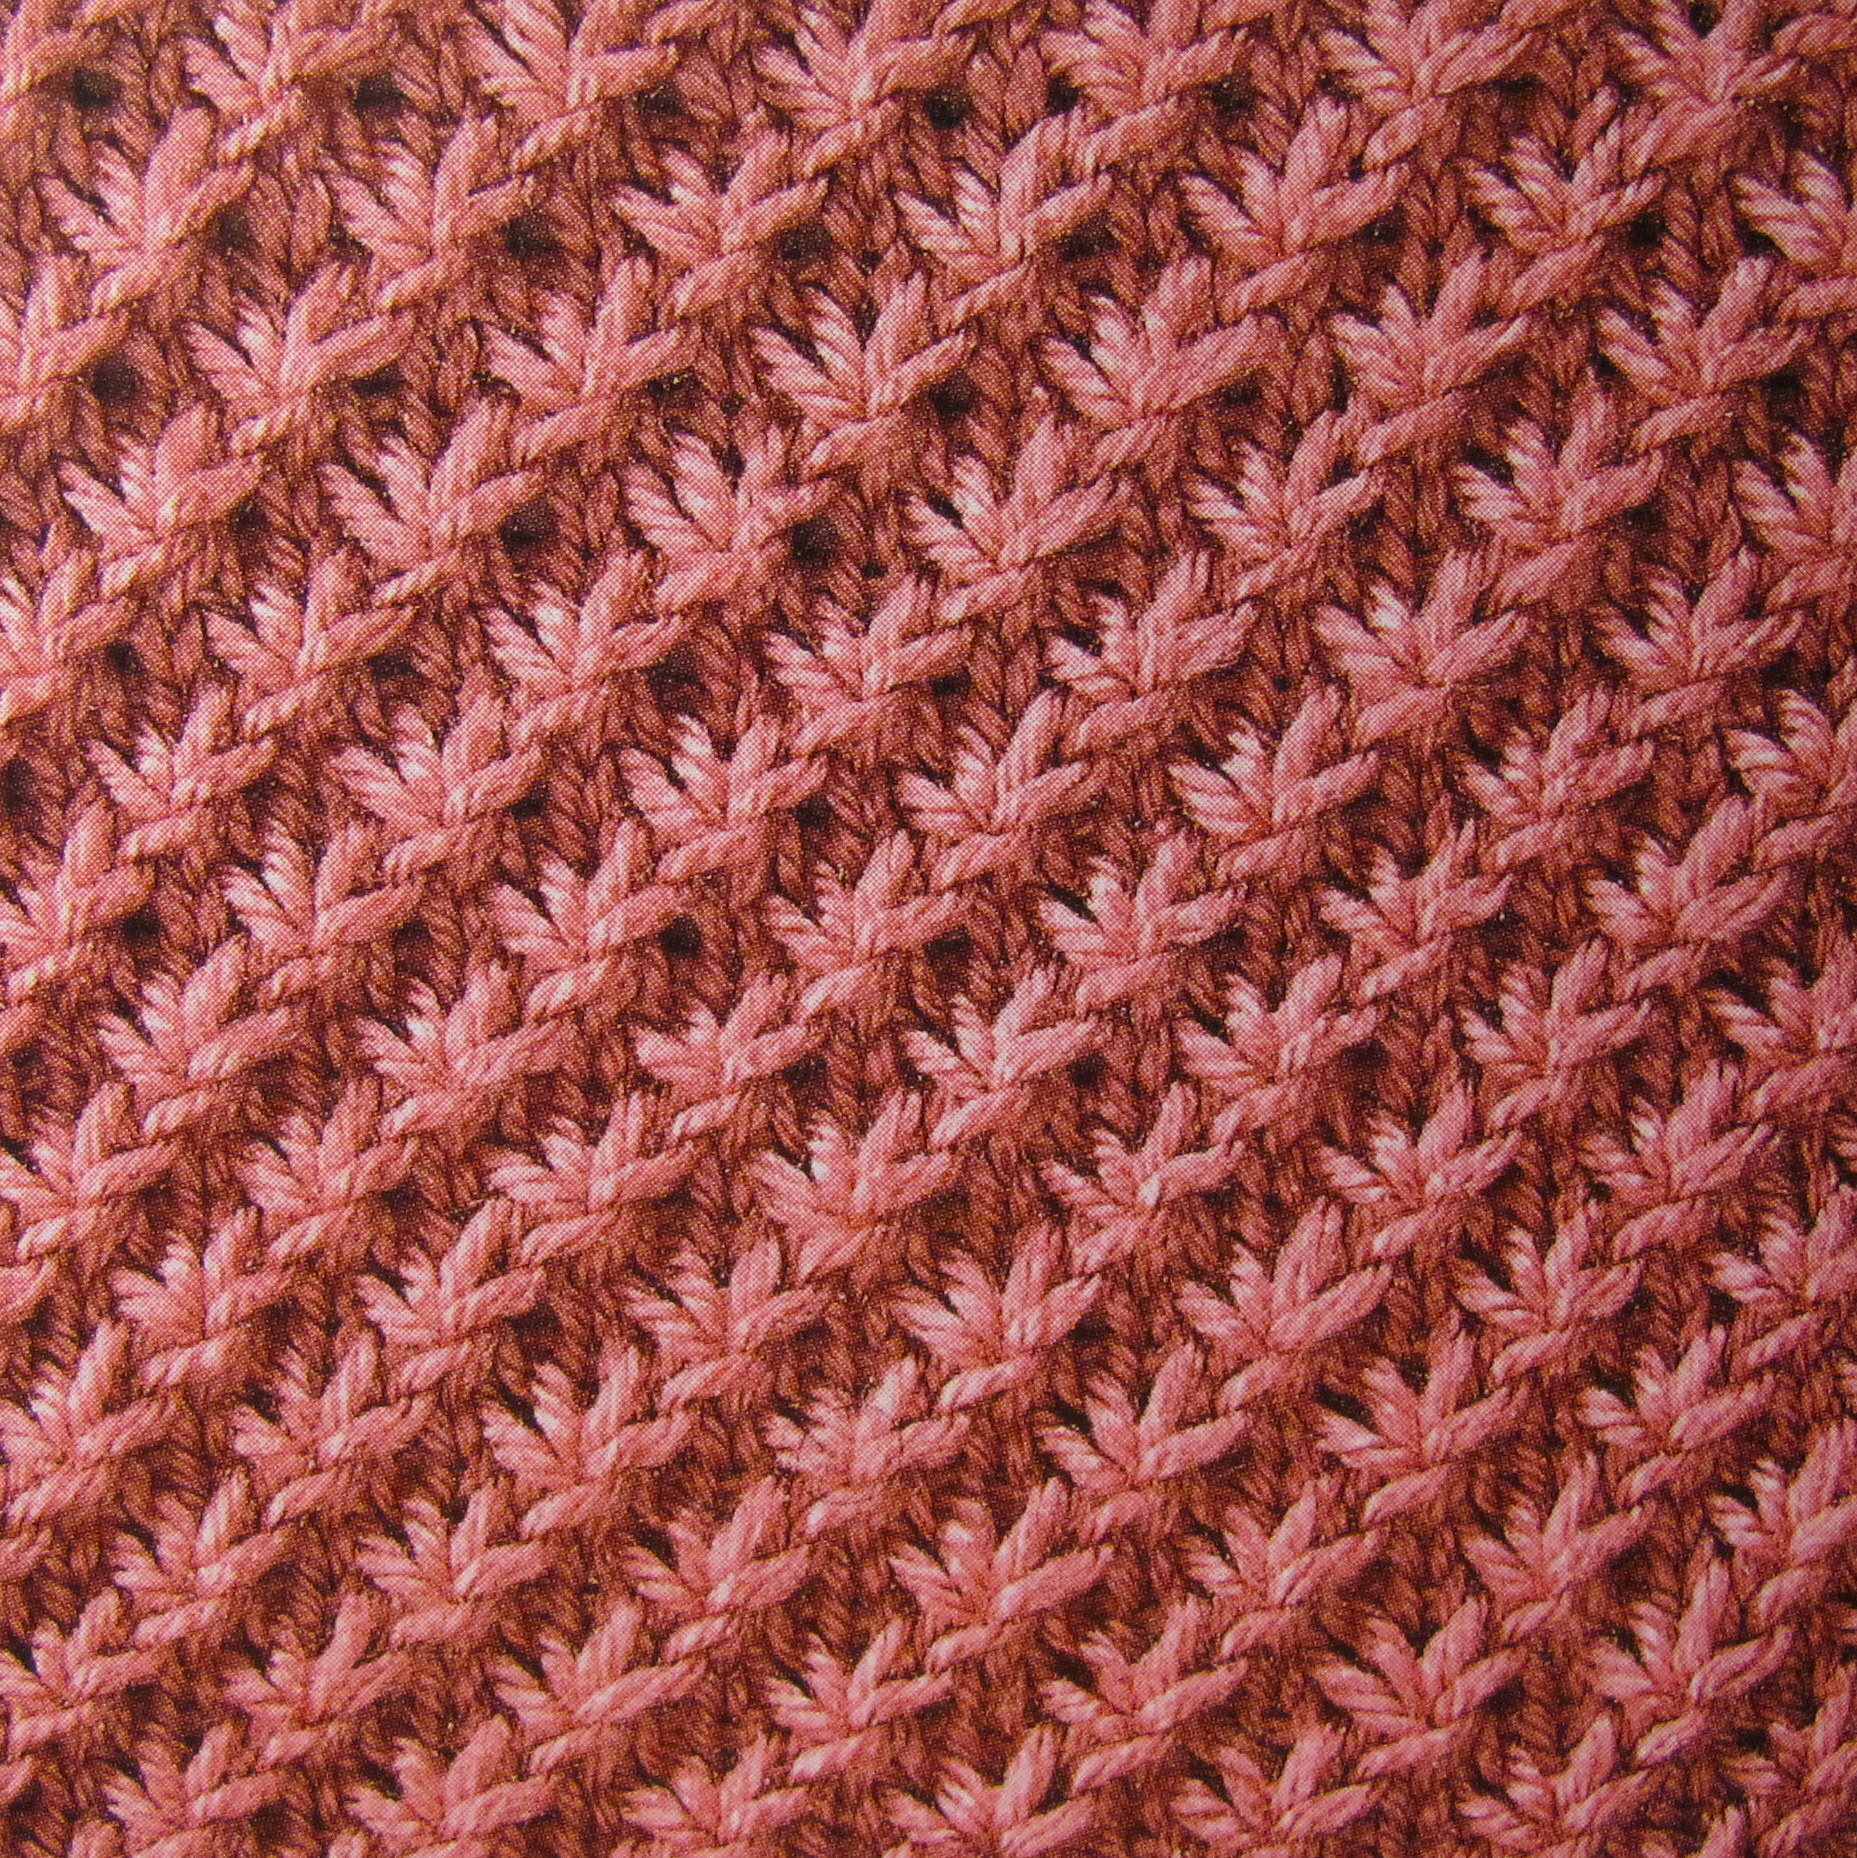 Star Pattern Knitting : 301 Moved Permanently